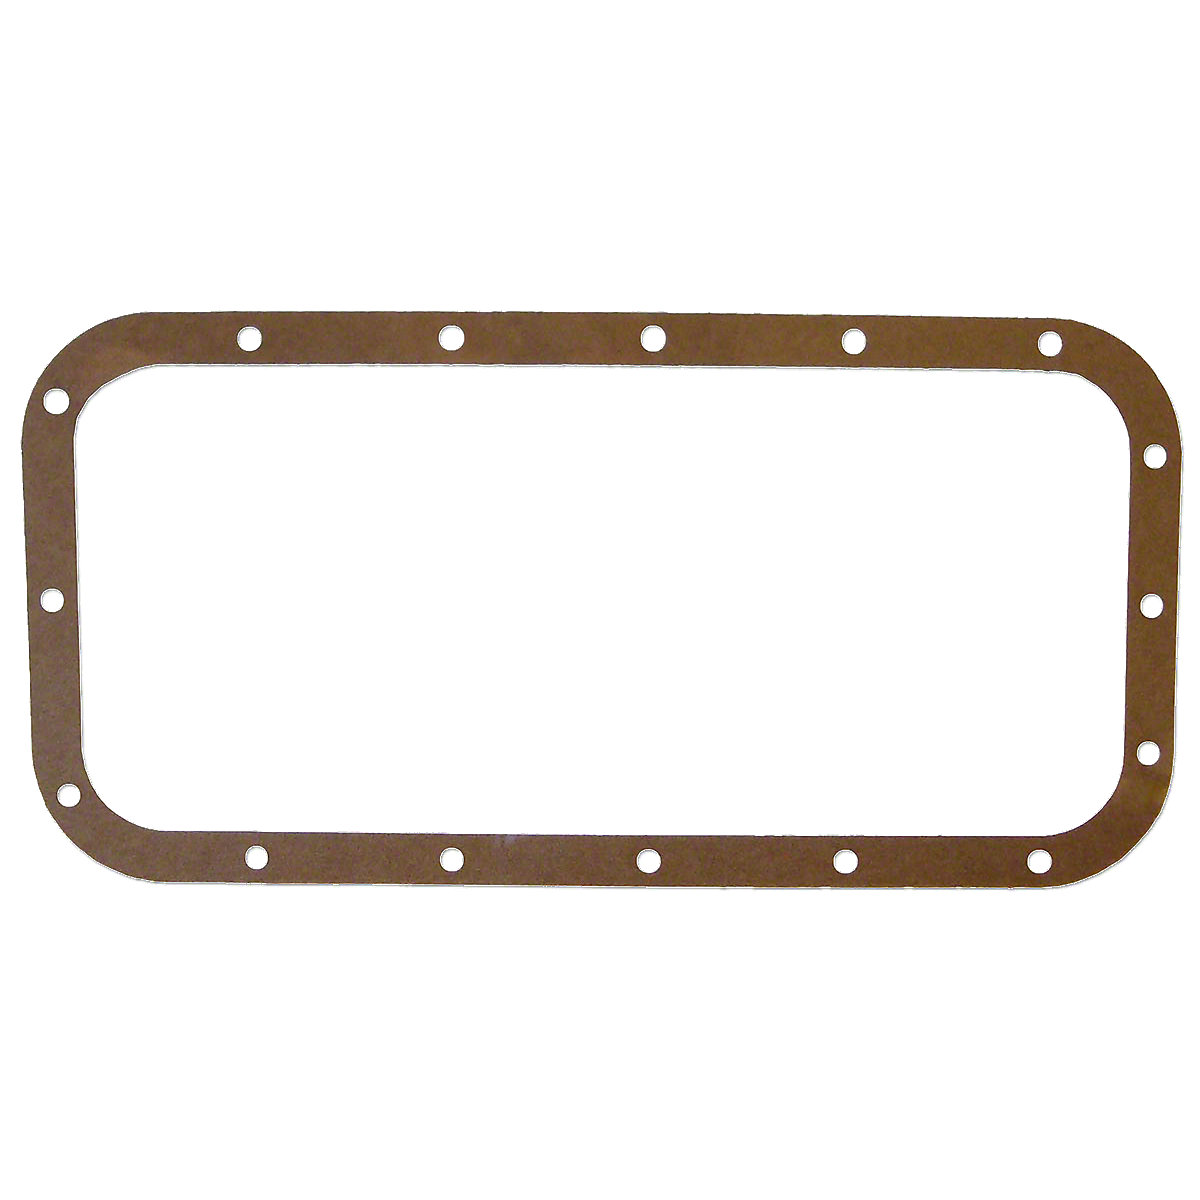 Oil Pan Gasket For Massey Harris: Pony.